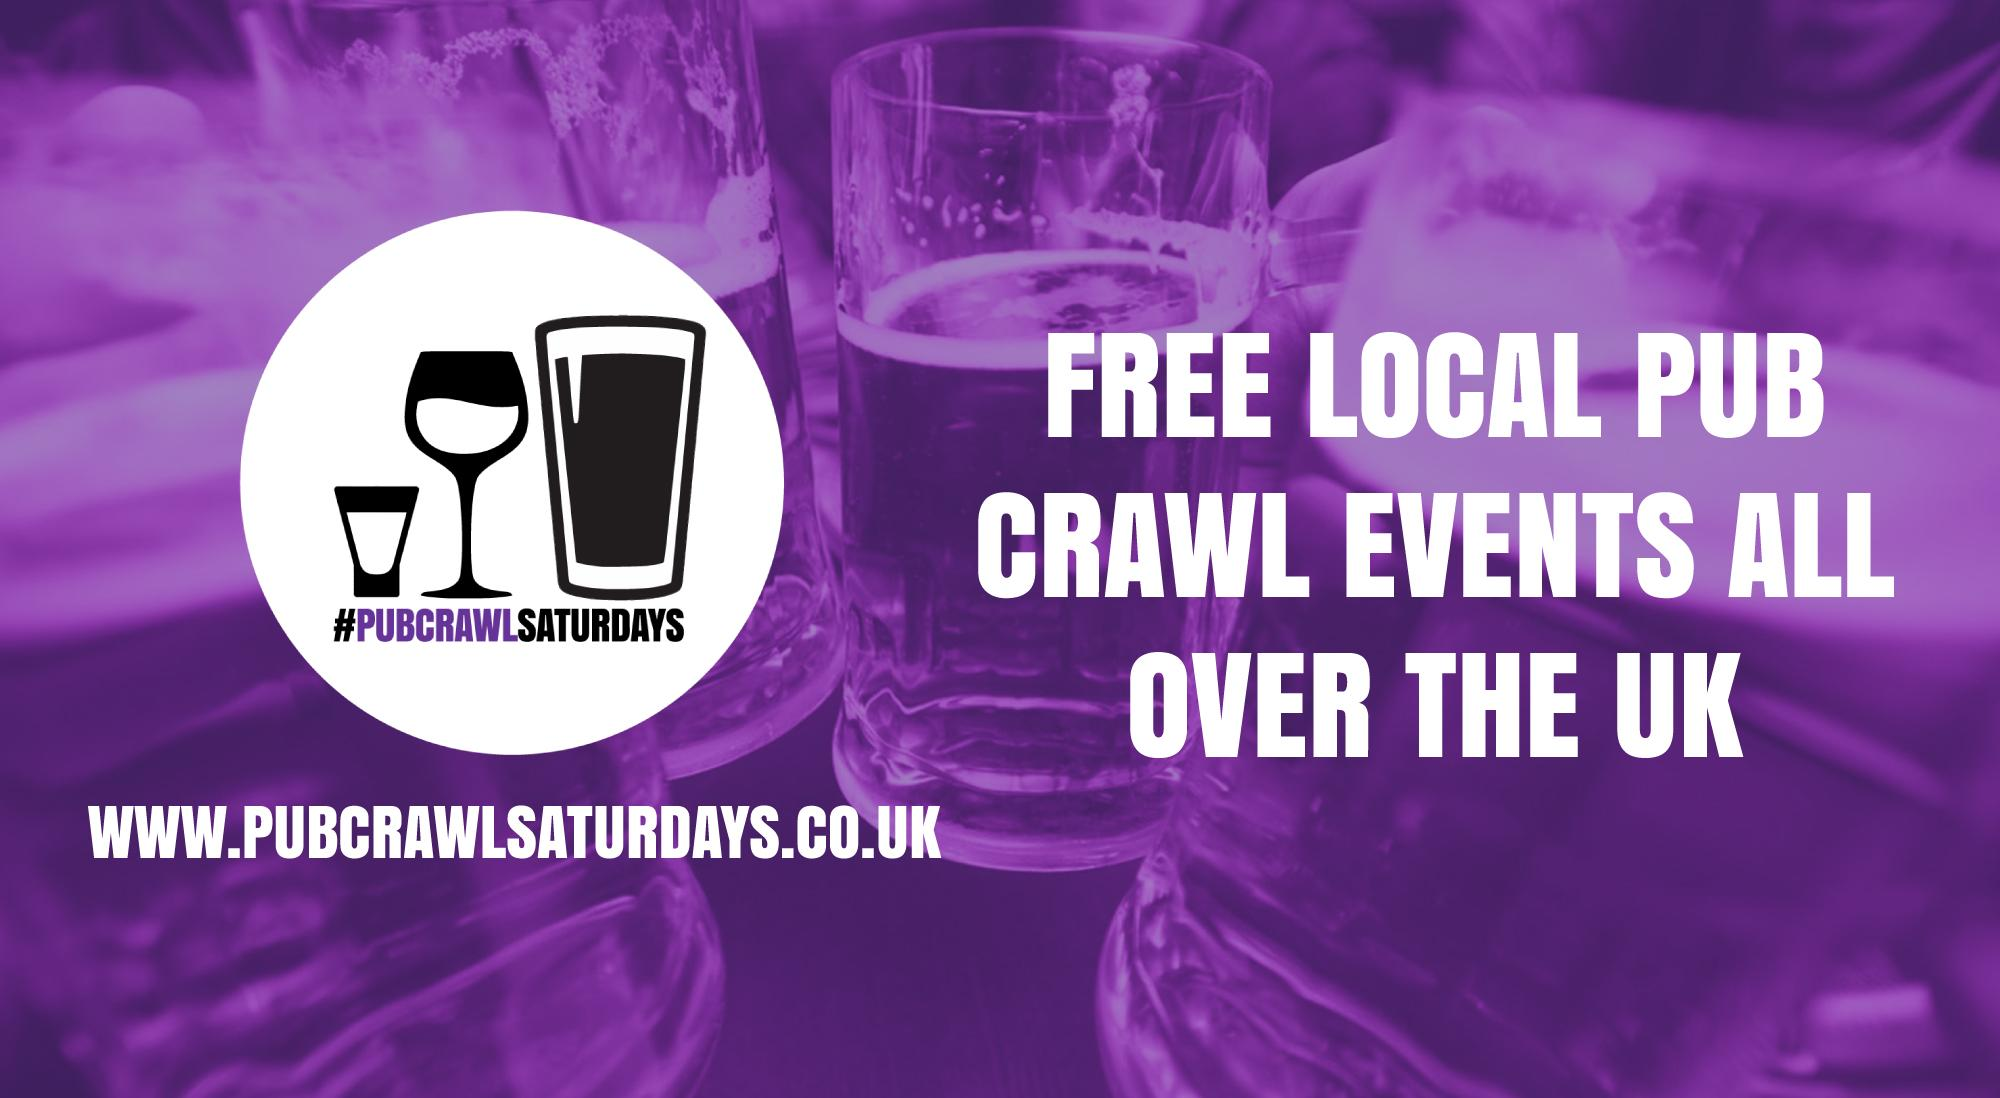 PUB CRAWL SATURDAYS! Free weekly pub crawl event in Paisley